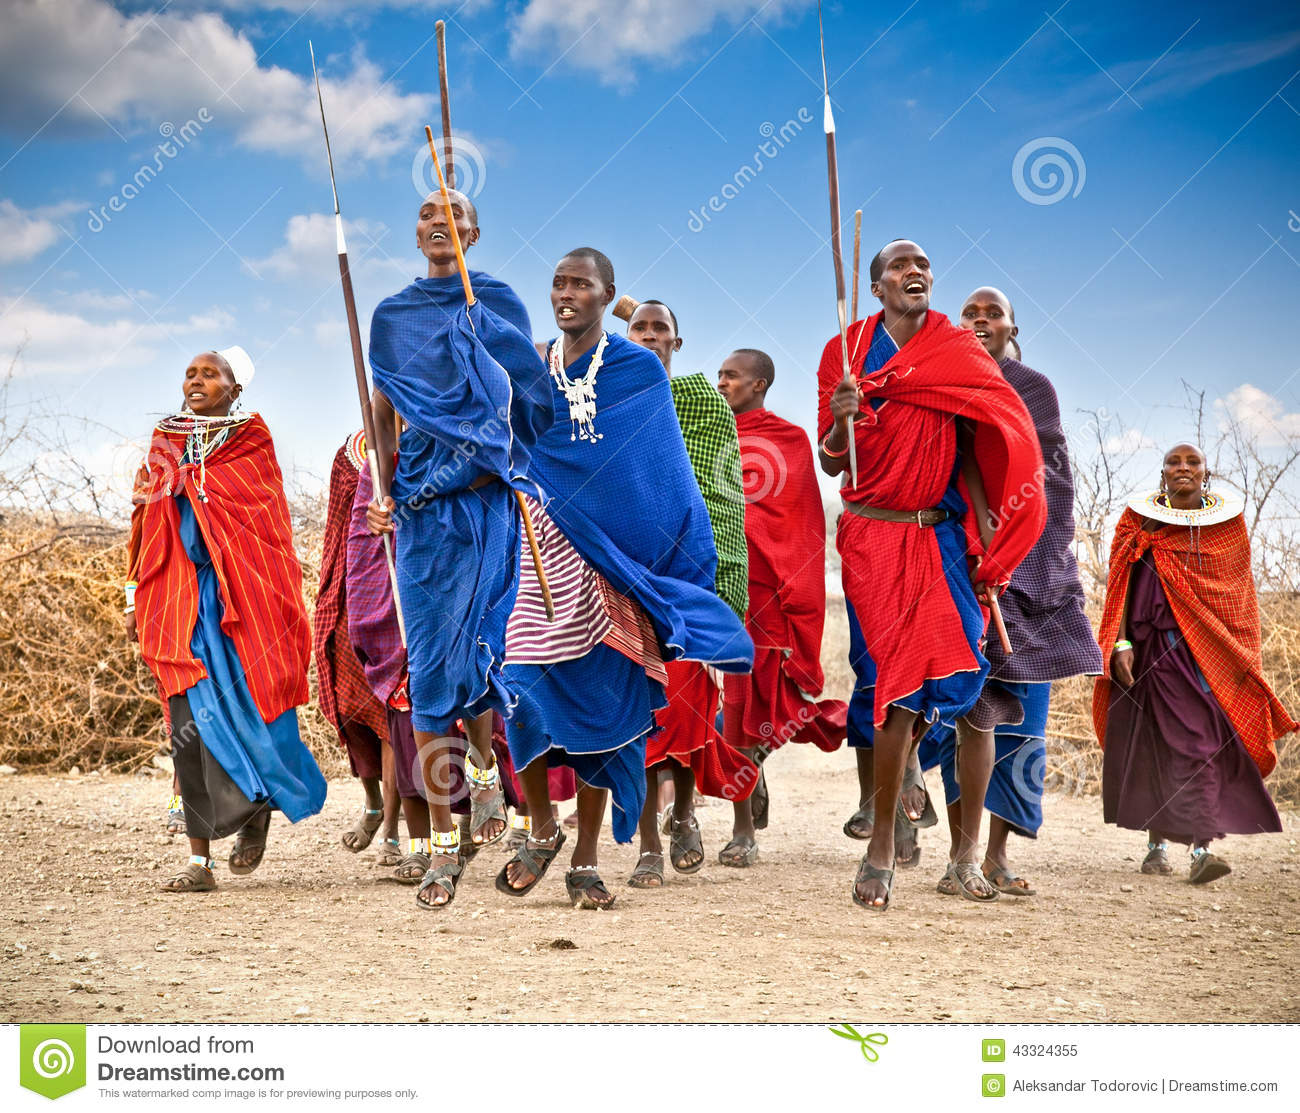 Masai warriors dancing traditional jumps as cultural ceremony. T